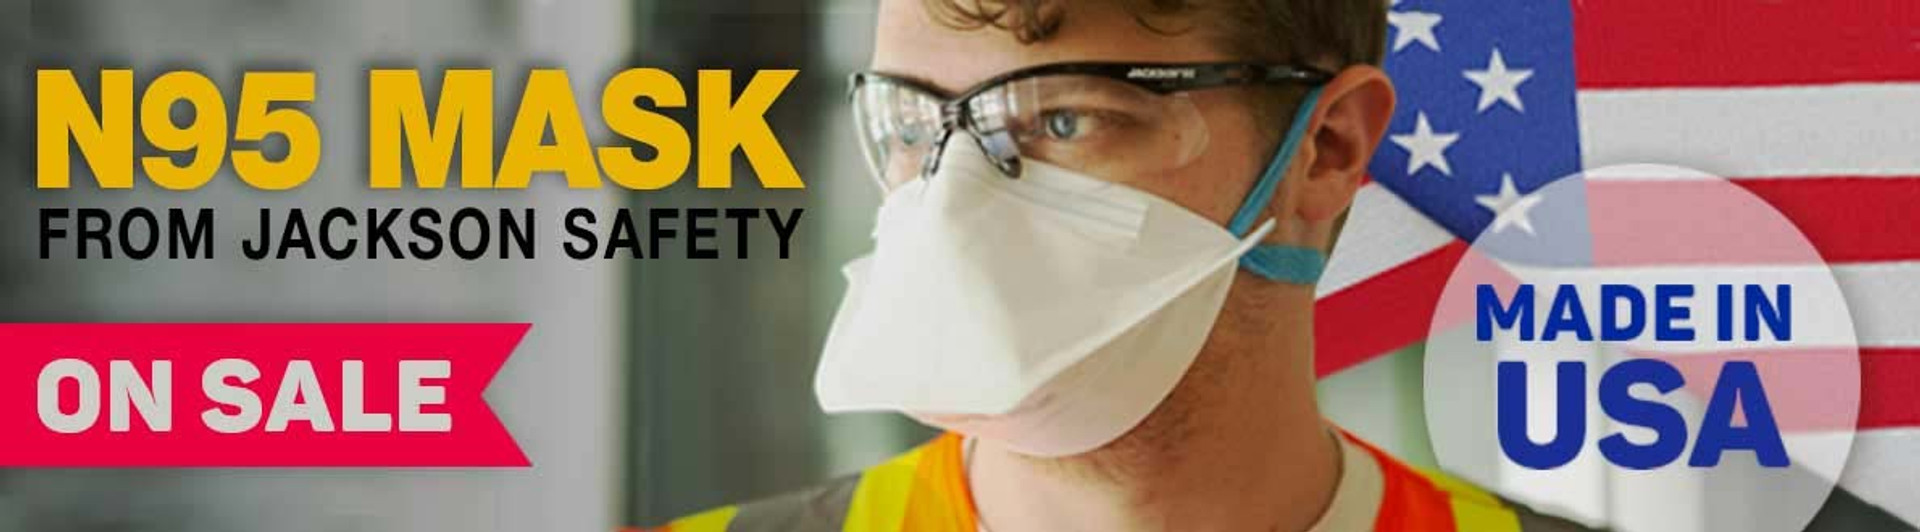 n95-mask-made-in-usa